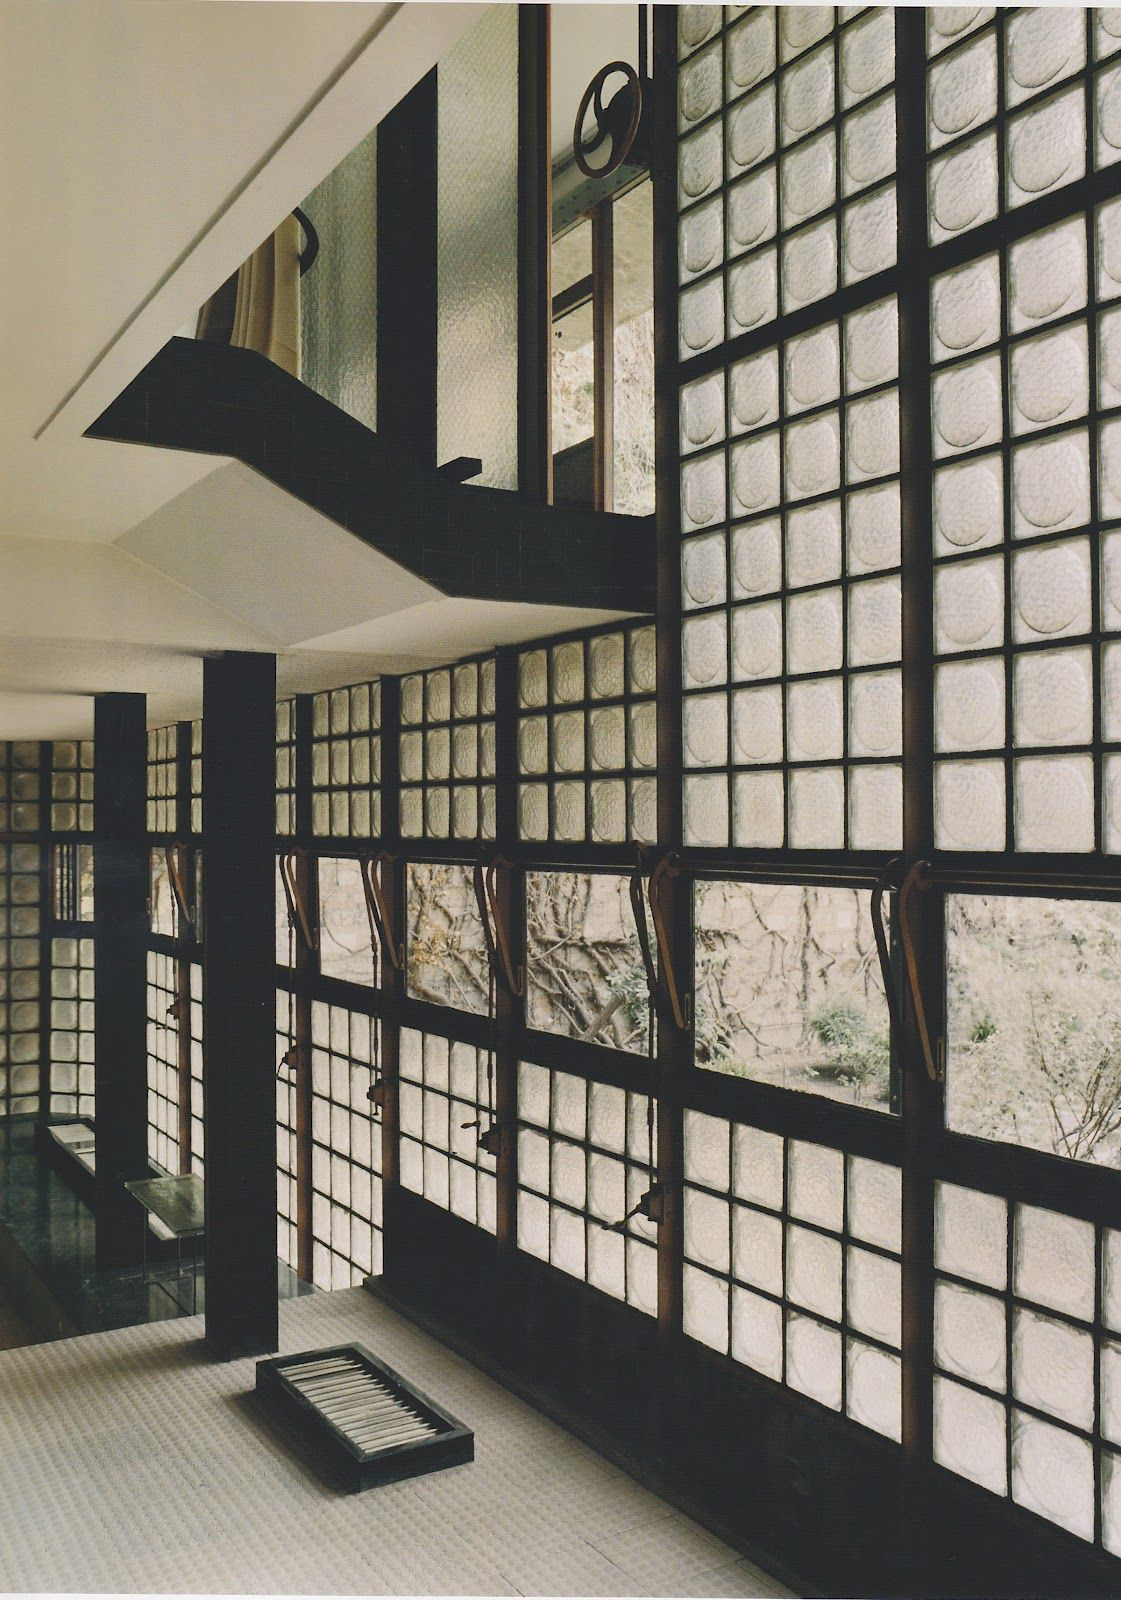 expressed structure brings a wonderful modern aesthetic chareau la maison de verre